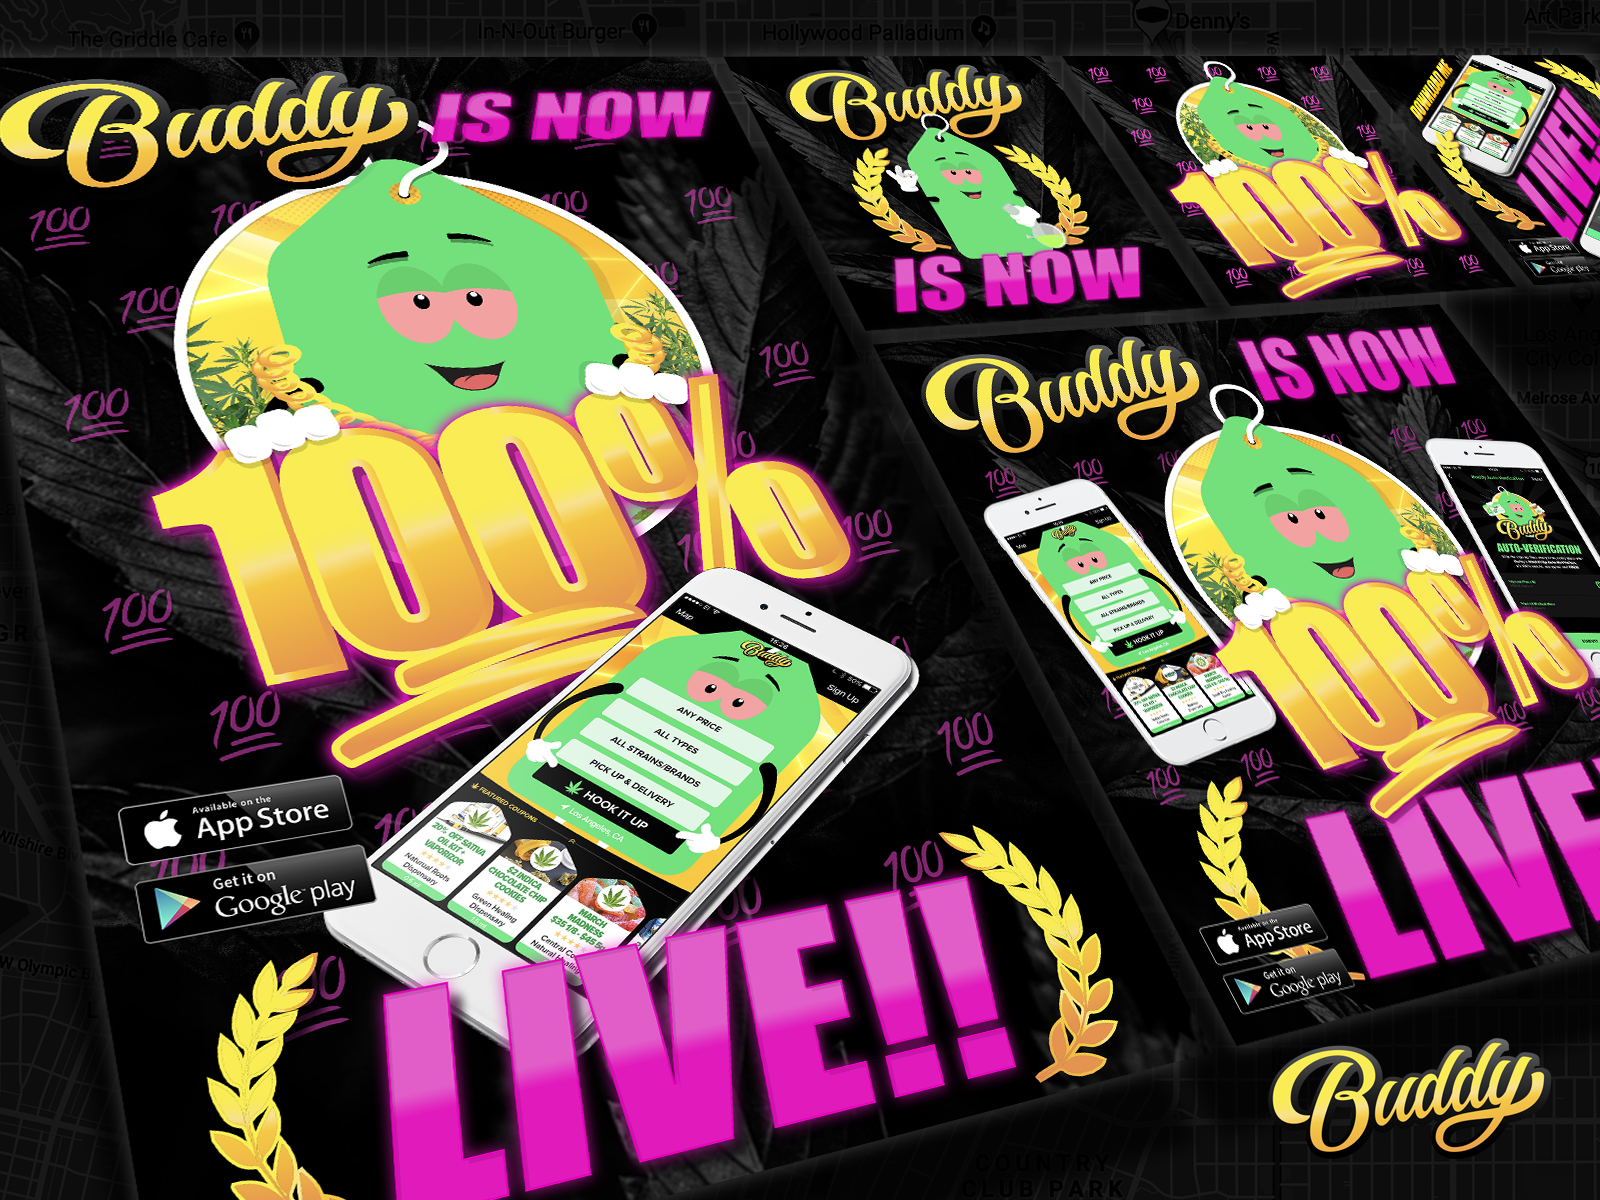 Social-Buddy-Ads-cover.png